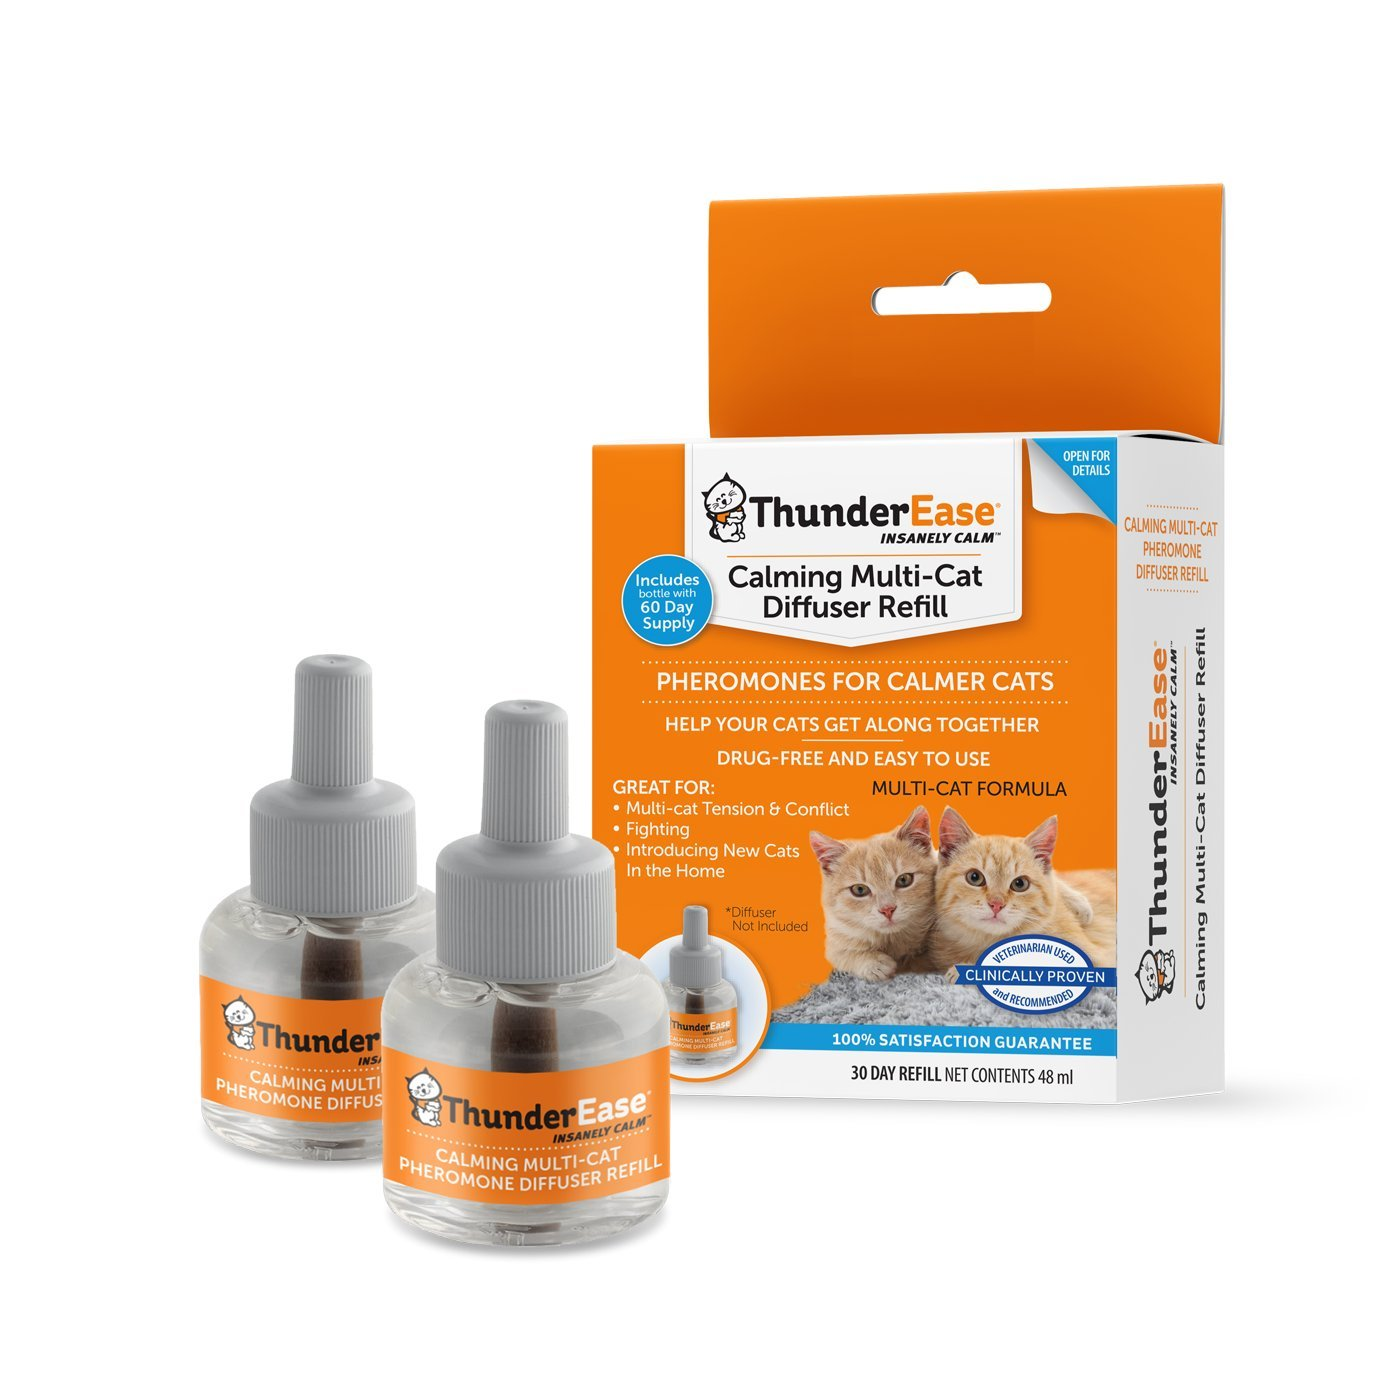 ThunderEase Multicat Calming Pheromone Diffuser Refill - Reduce Cat Conflict, Tension and Fighting (60 Day Supply)